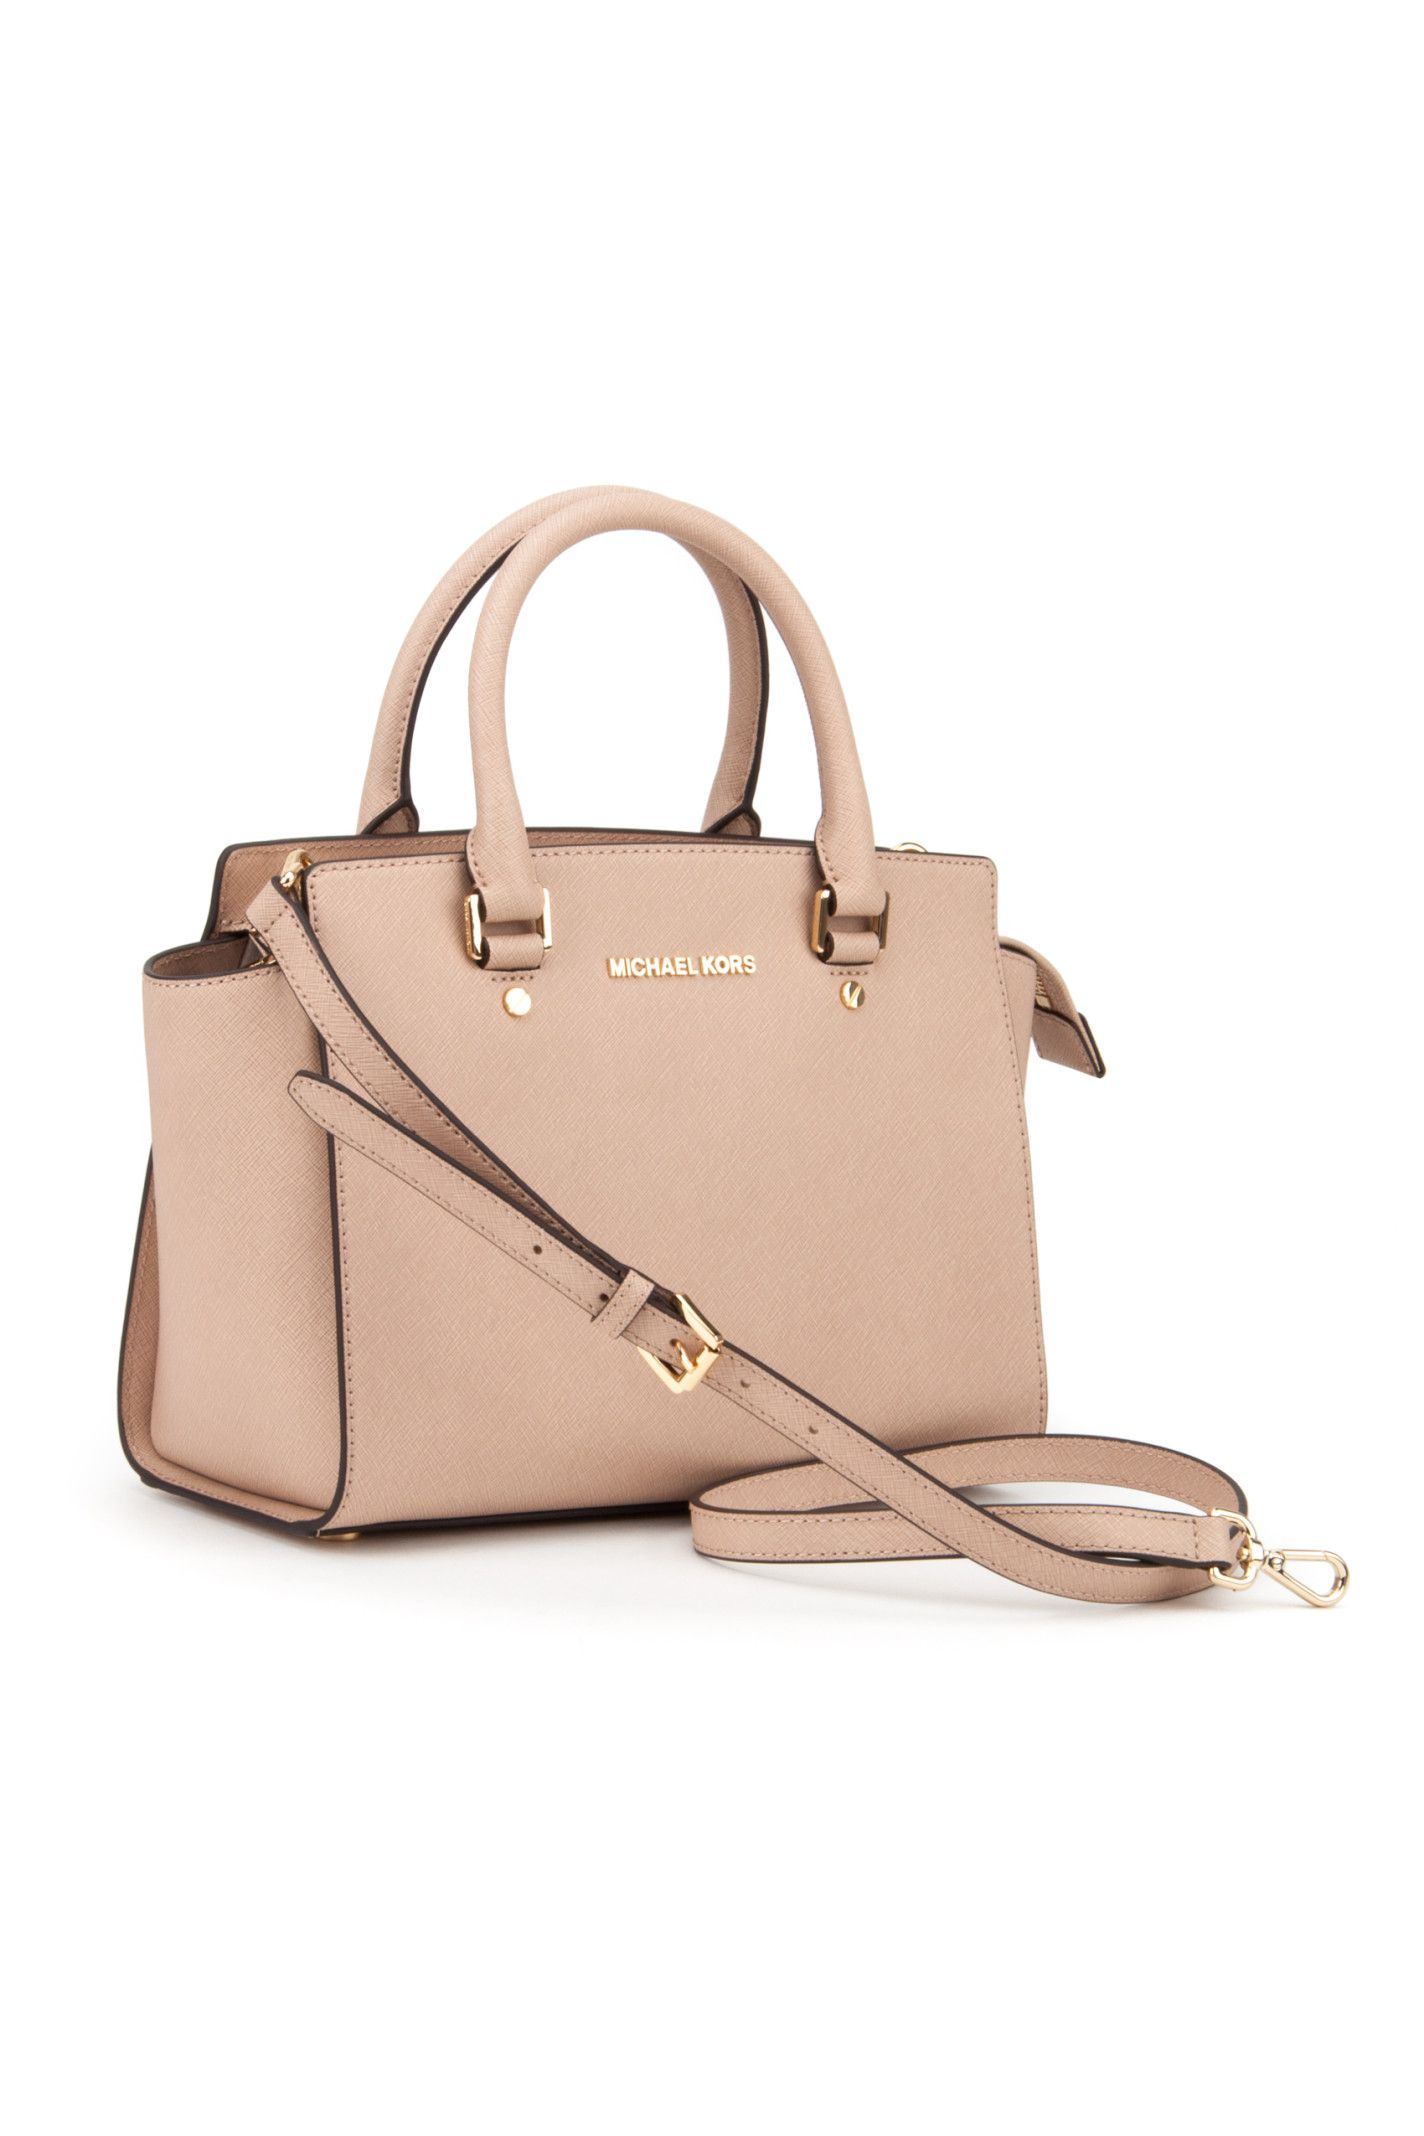 edaec3d479b211 michael kors on | Style Inspiration | Bags, Michael kors bag, Zipper ...